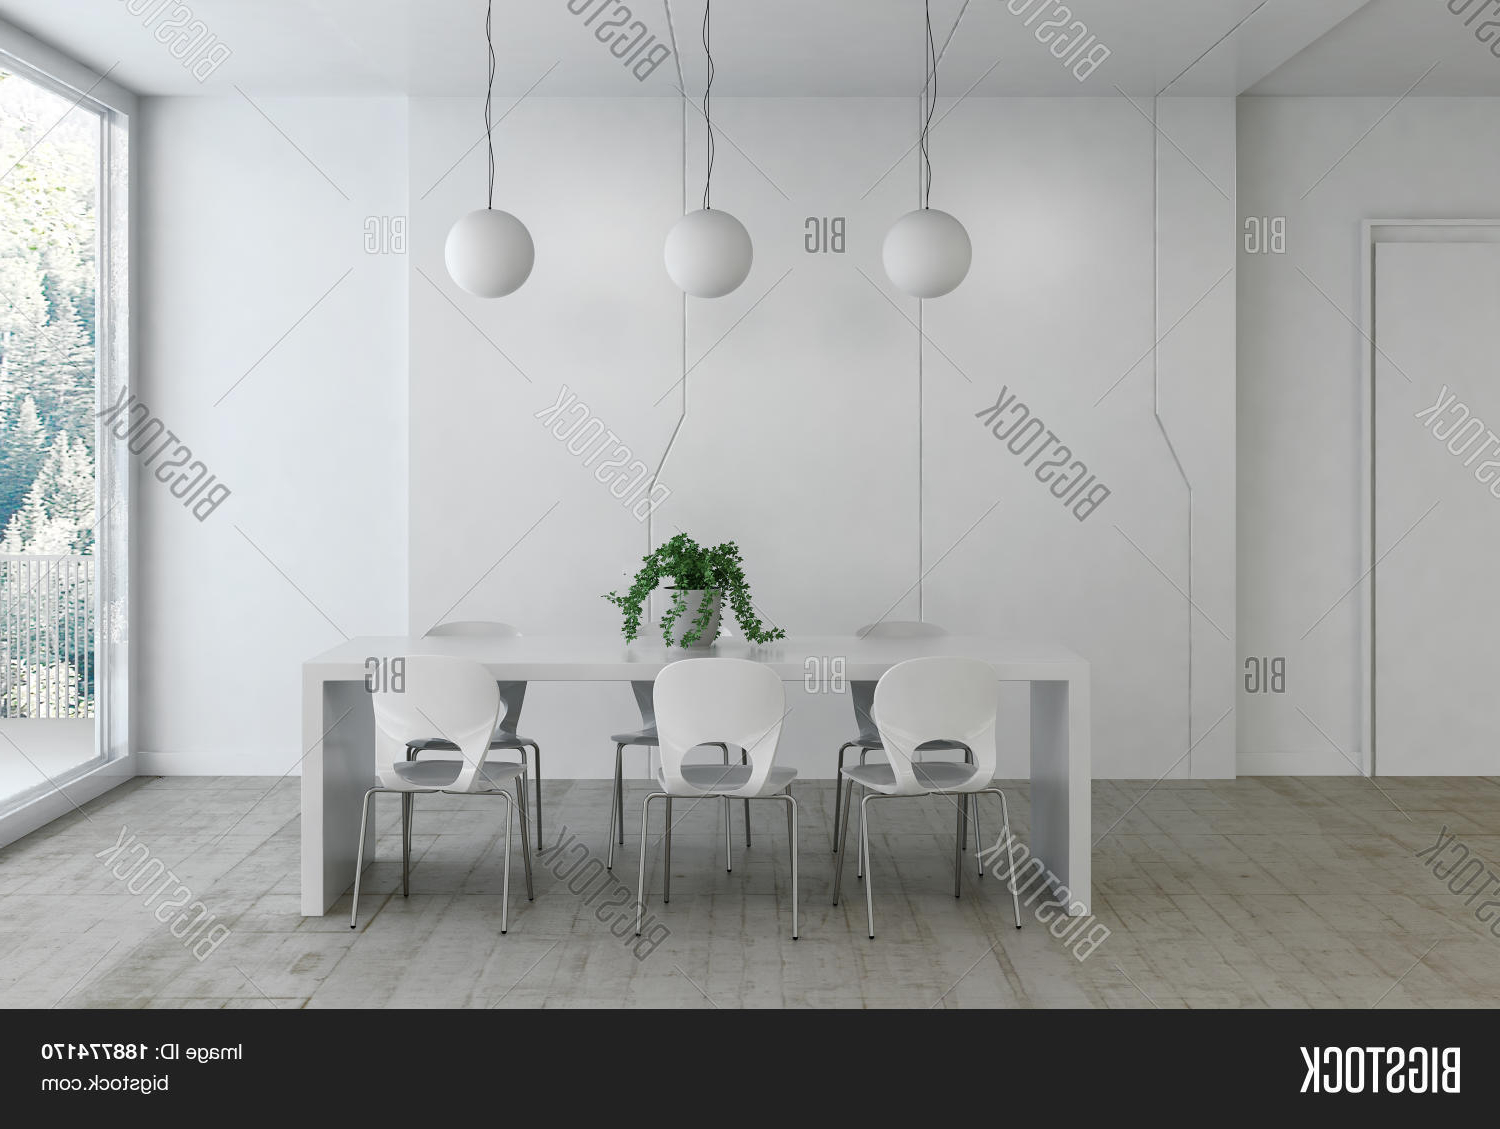 Elegance Large Round Dining Tables with Well-known Elegant Minimalist Image & Photo (Free Trial)